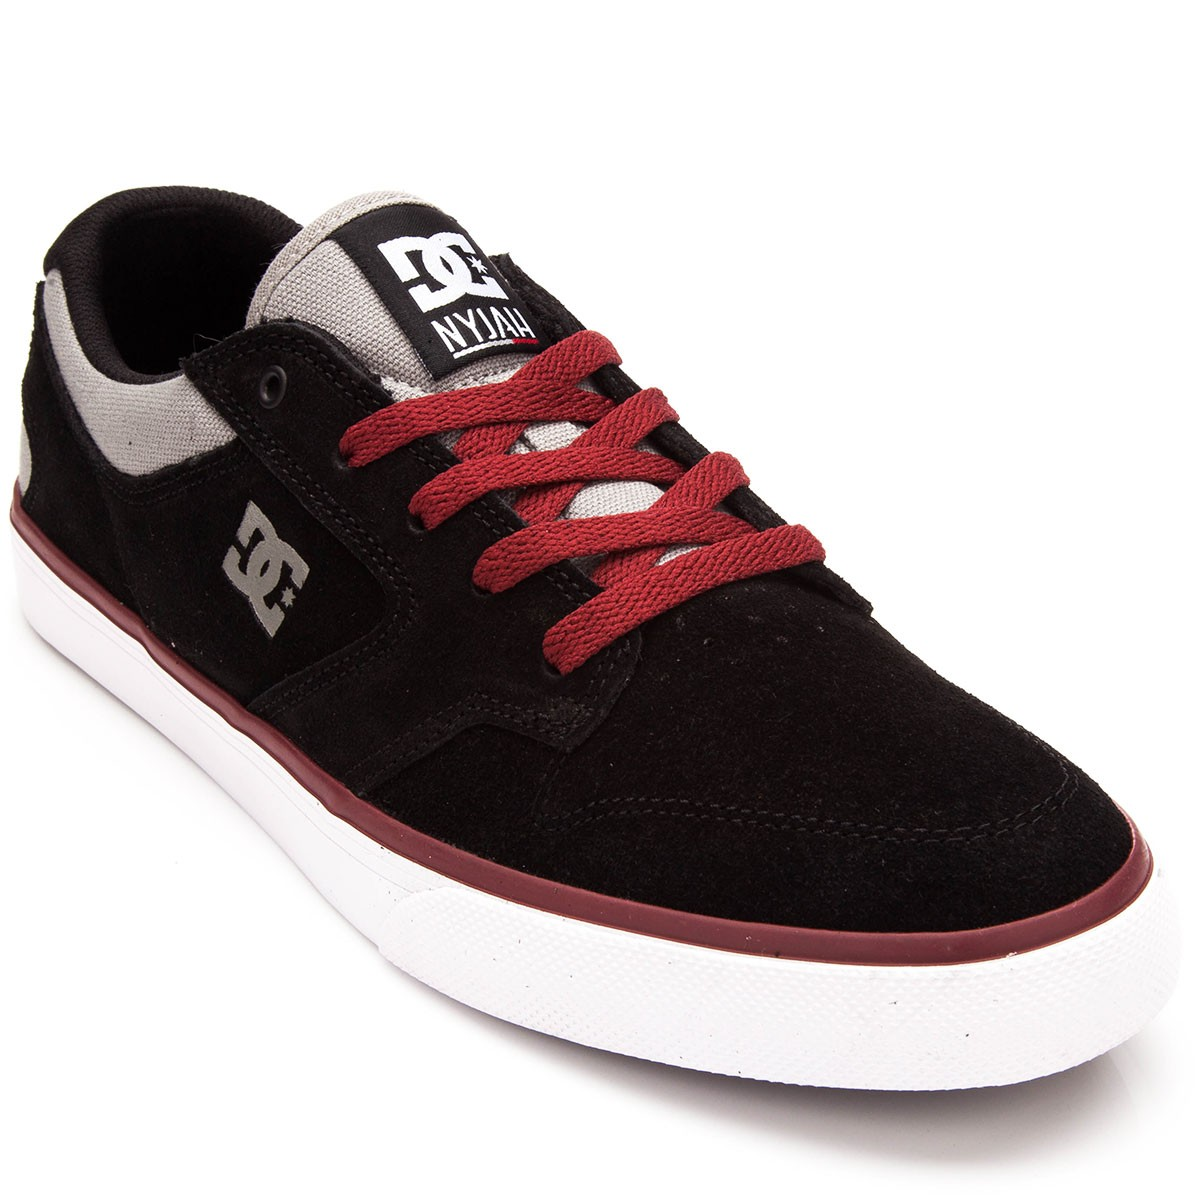 DC Nyjah Vulc Shoes 9a3ecded27